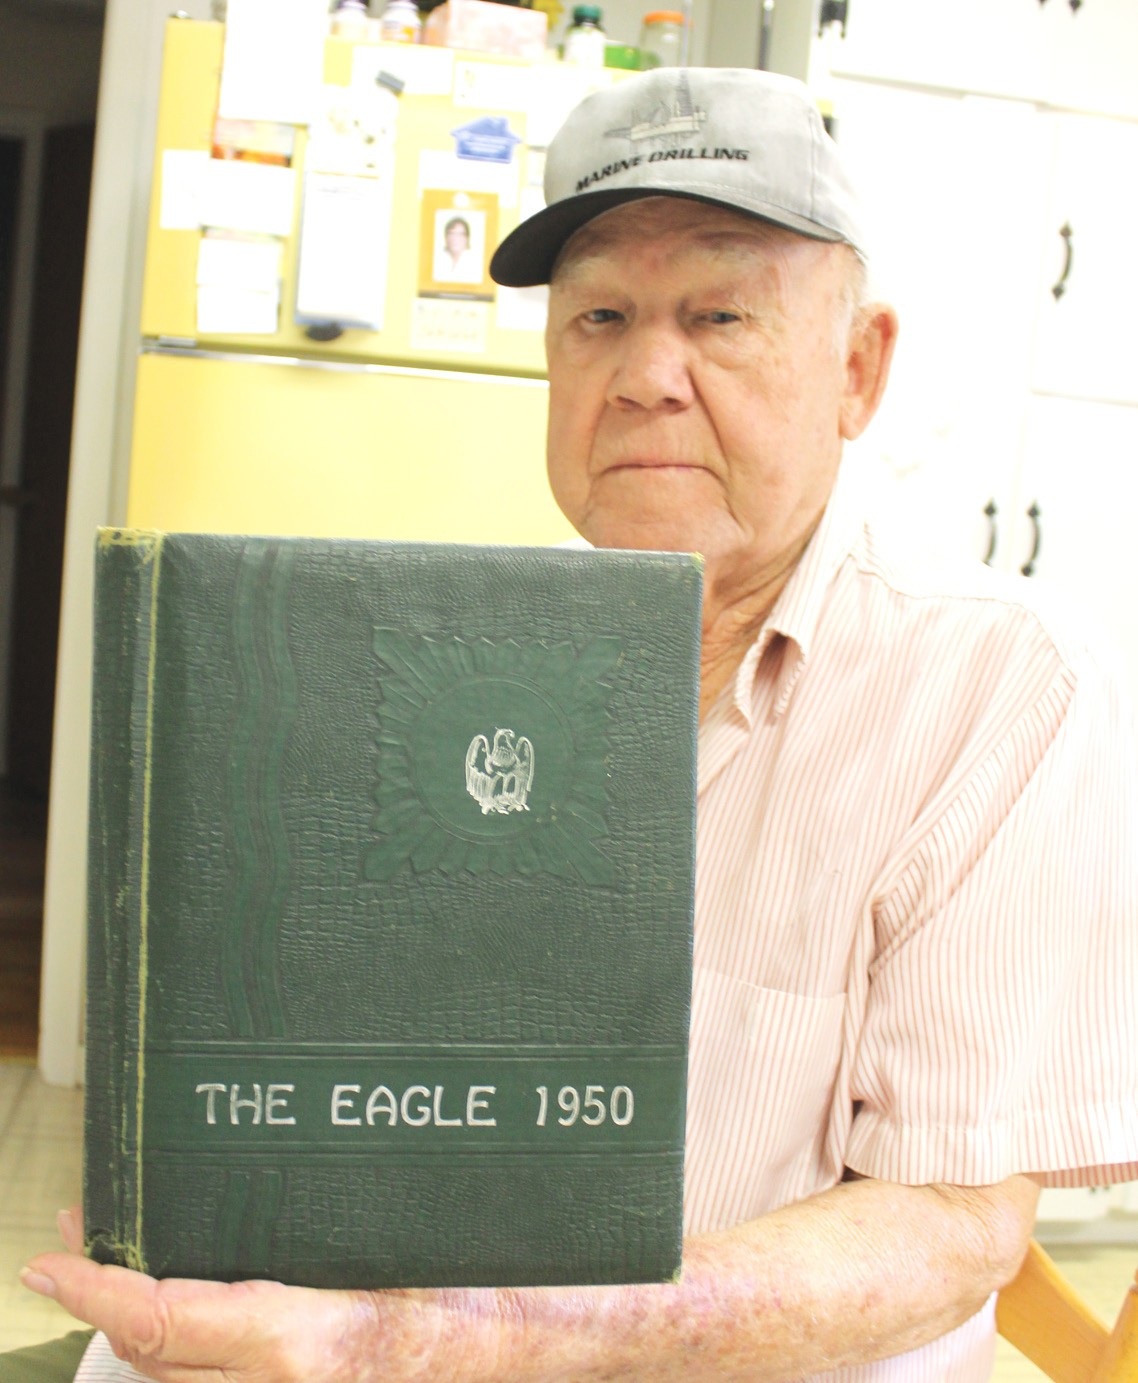 Marvin Deckert with his 1950 Pleasanton Schools annual.